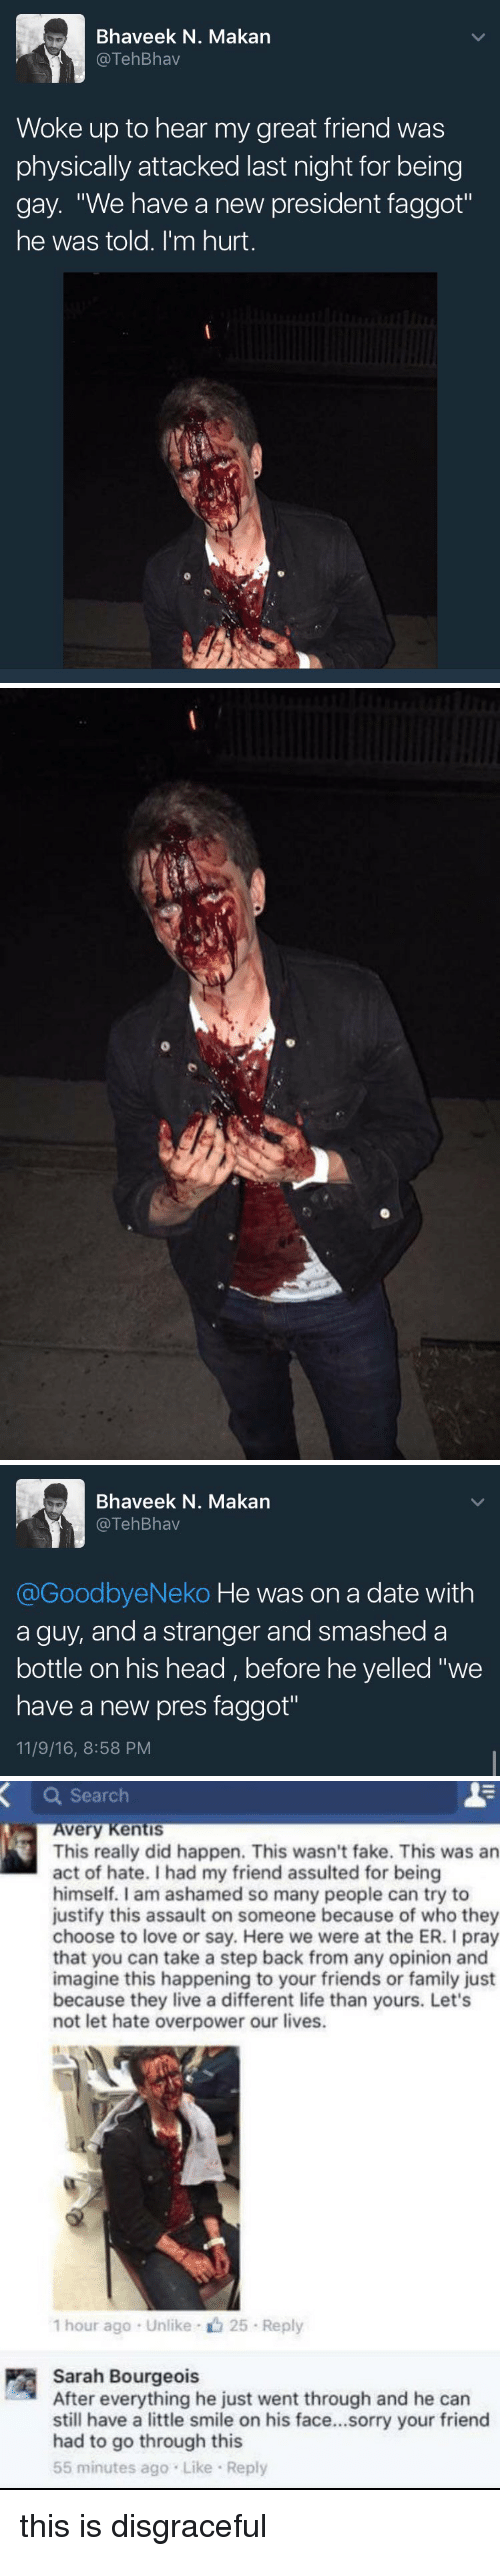 "Dating, Fake, and Family: Bhaveek N. Makan  TehBhav  Woke up to hear my great friend was  physically attacked last night for being  gay. ""We have a new president faggot""  he was told. I'm hurt   Bhaveek N. Makan  TehBhav  @GoodbyeNeko He was on a date with  a guy, and a stranger and smashed a  bottle on his head before he yelled ""we  have a new pres faggot""  11/9/16, 8:58 PM   a Search  very Kentis  This really did happen. This wasn't fake. This was an  act of hate. had my friend assulted for being  himself. I am ashamed so many people can try to  justify this assault on someone because of who they  choose to love or say. Here we were at the ER. I pray  that you can take a step back from any opinion and  imagine this happening to your friends or family just  because they live a different life than yours. Let's  not let hate overpower our lives.  1 hour ago Unlike 25 Reply  Sarah Bourgeois  After everything he just went through and he can  still have a little smile on his face...sorry your friend  had to go through this  55 minutes ago Like Reply this is disgraceful"